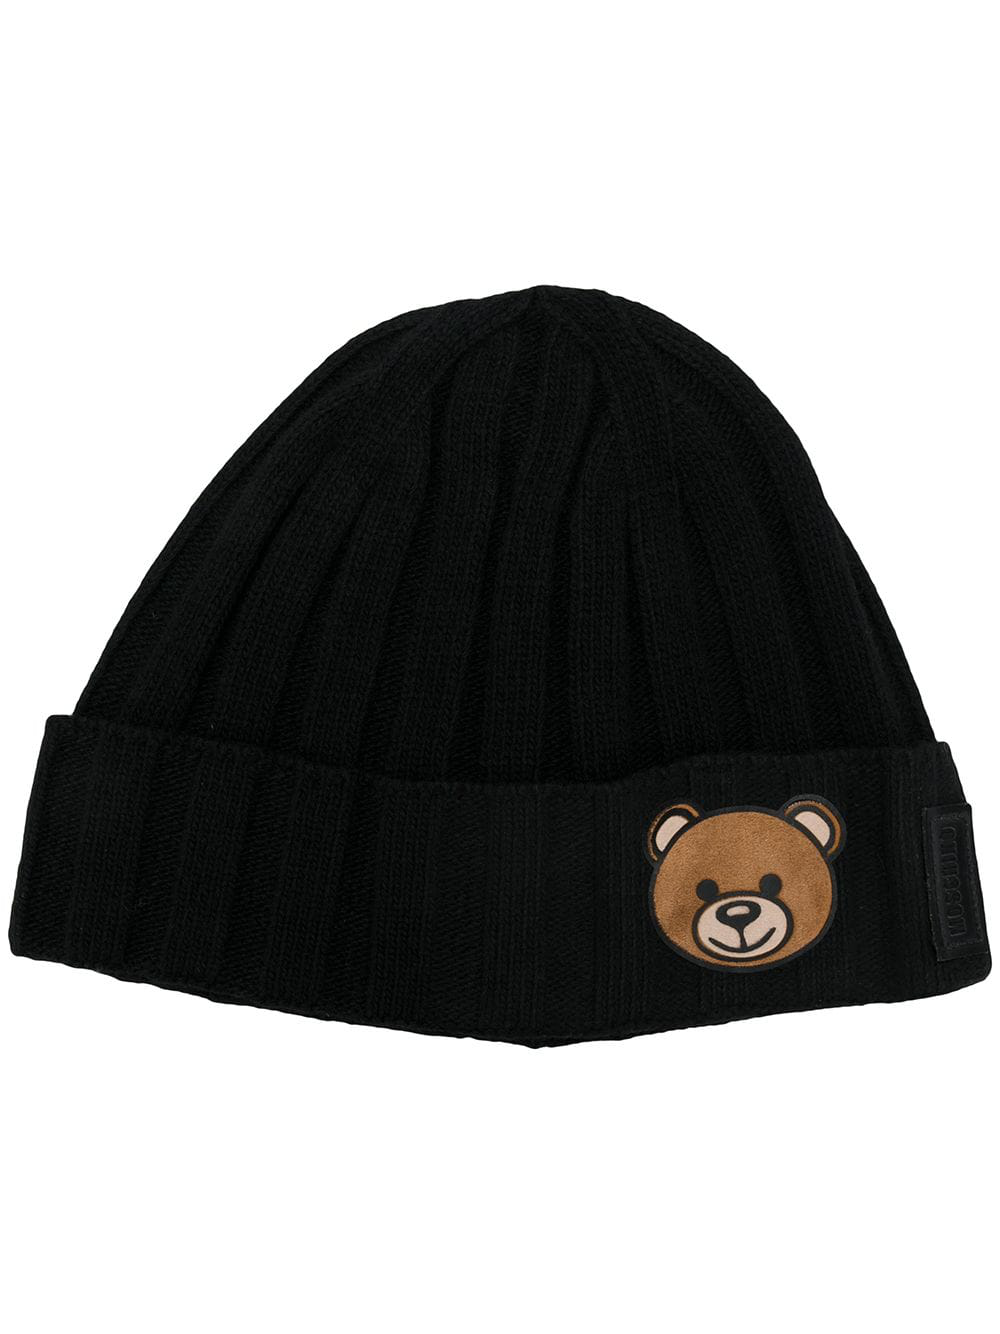 ad6b854e80fbe8 Moschino Teddy Bear Beanie In Black | ModeSens